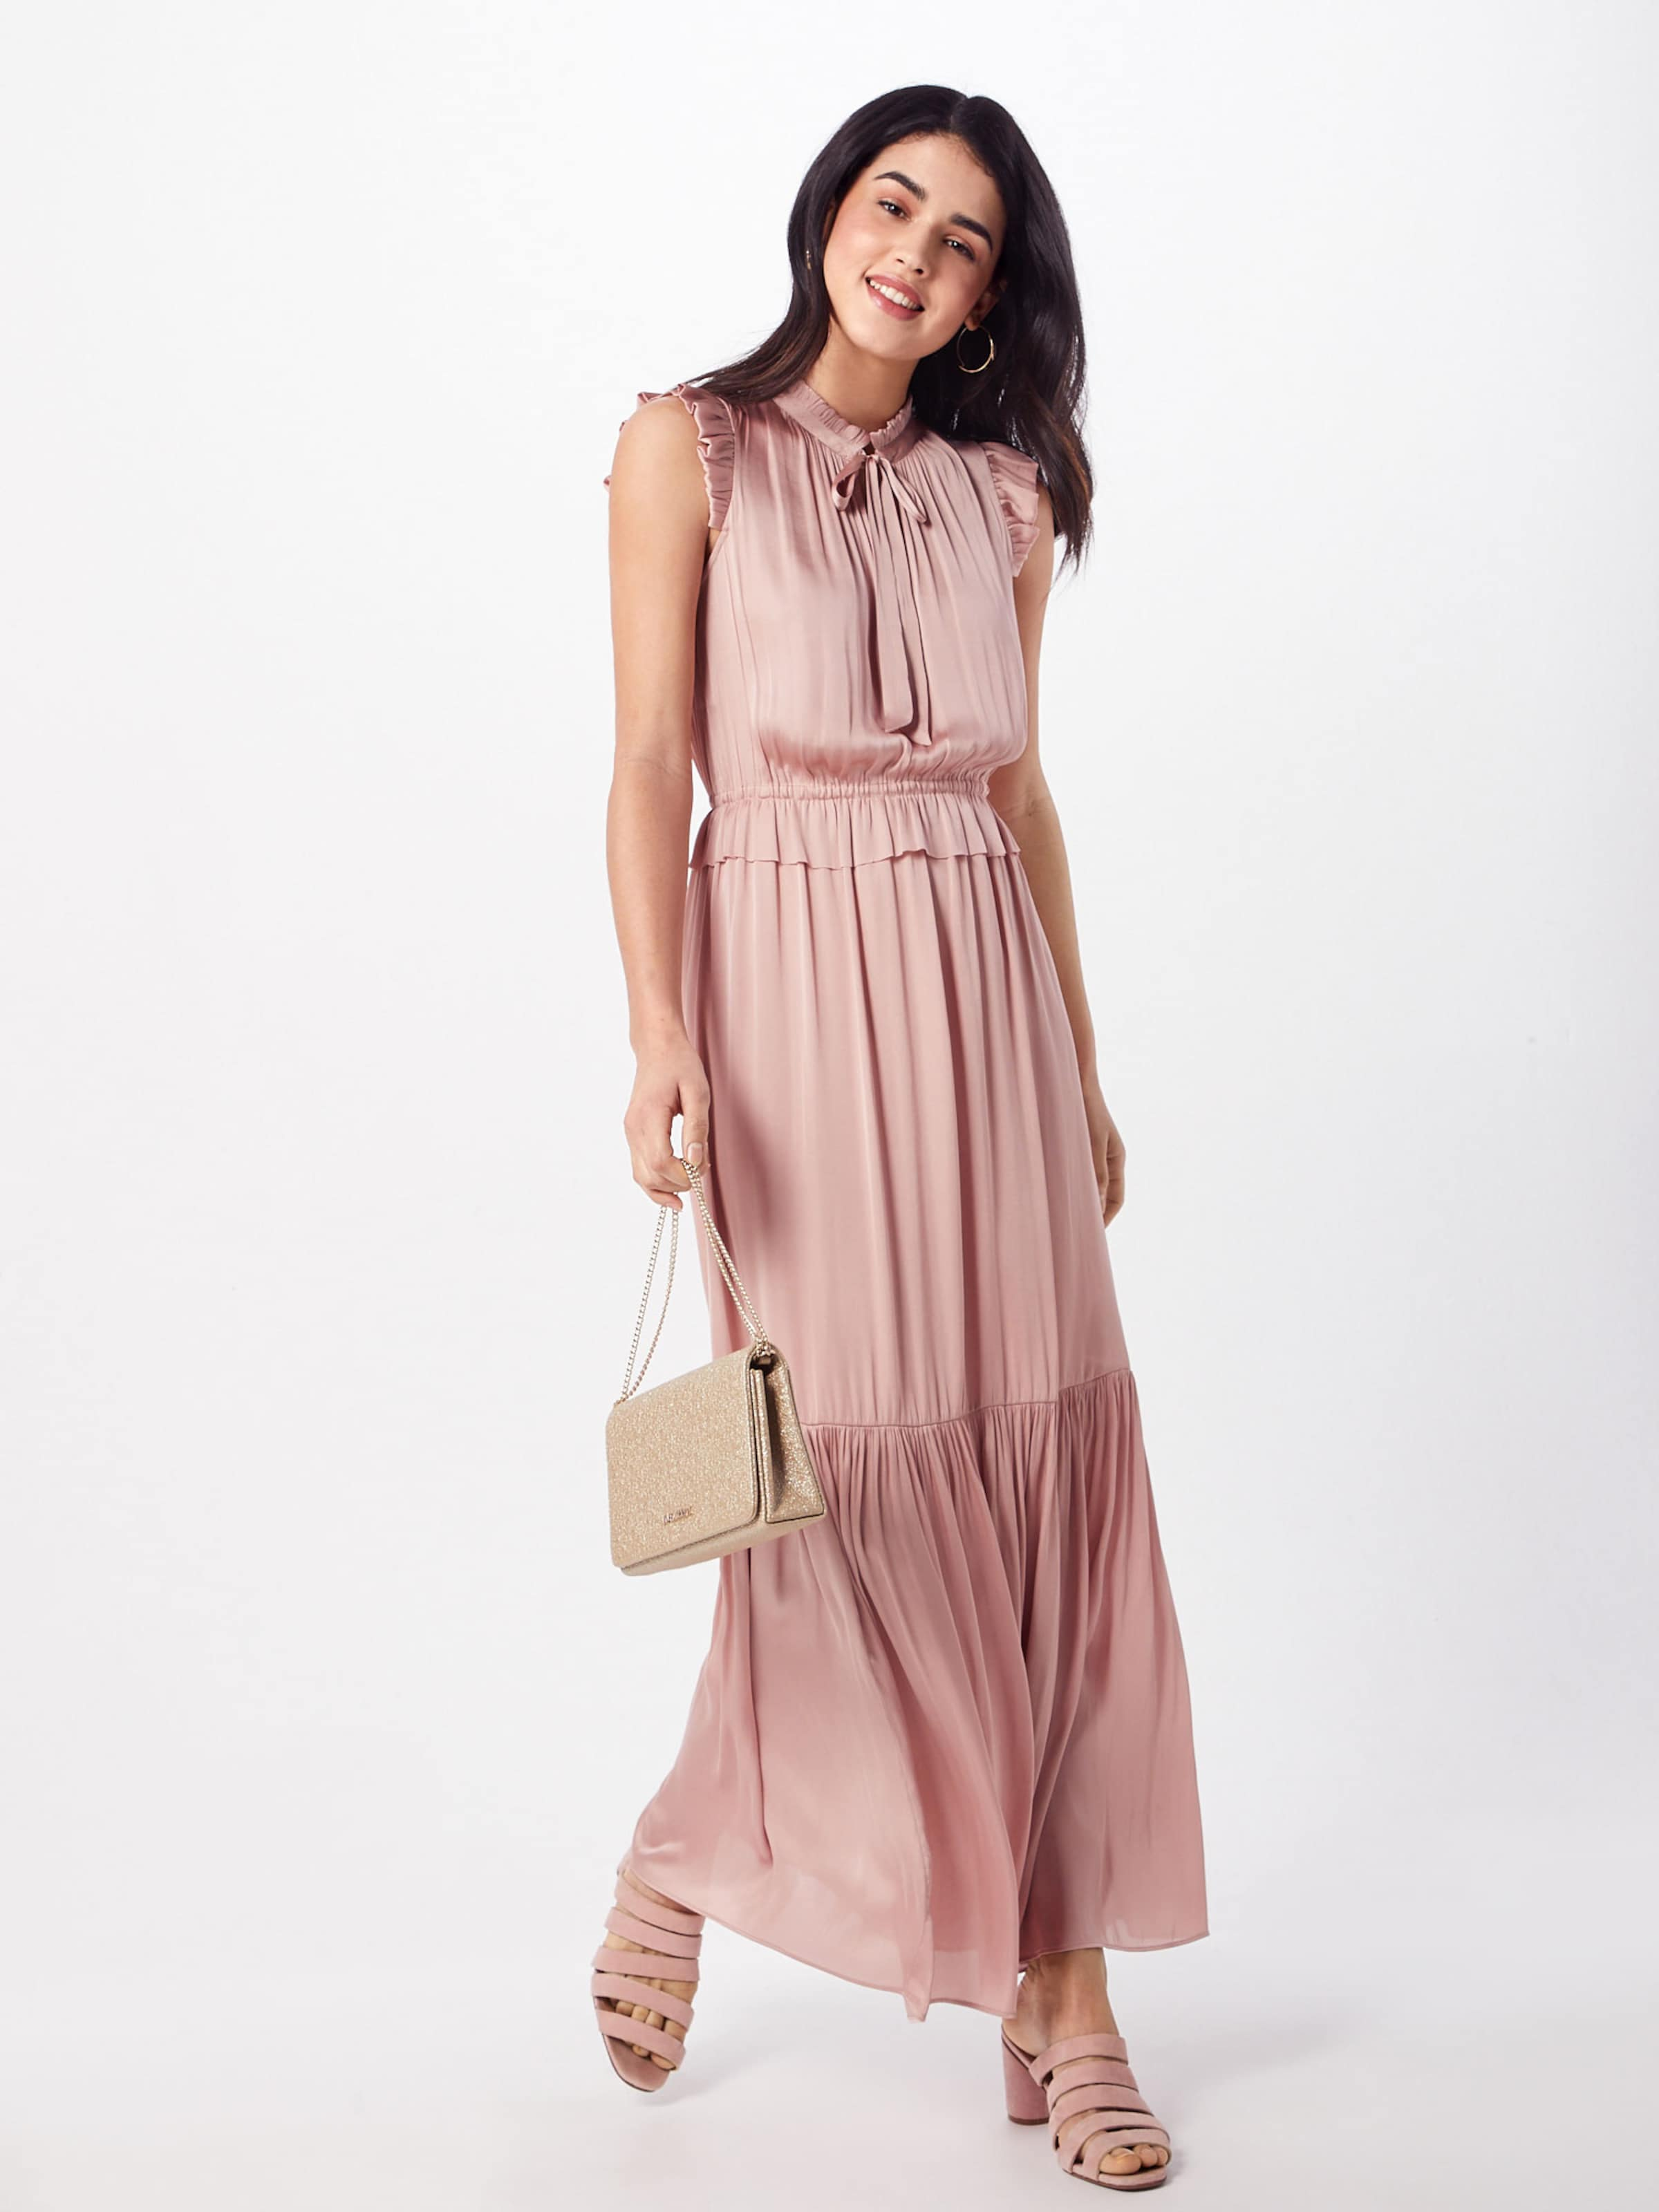 Kleid Republic In Rosa Maxi Solid' Banana 'sl Neck Tie LqjSzMVGUp